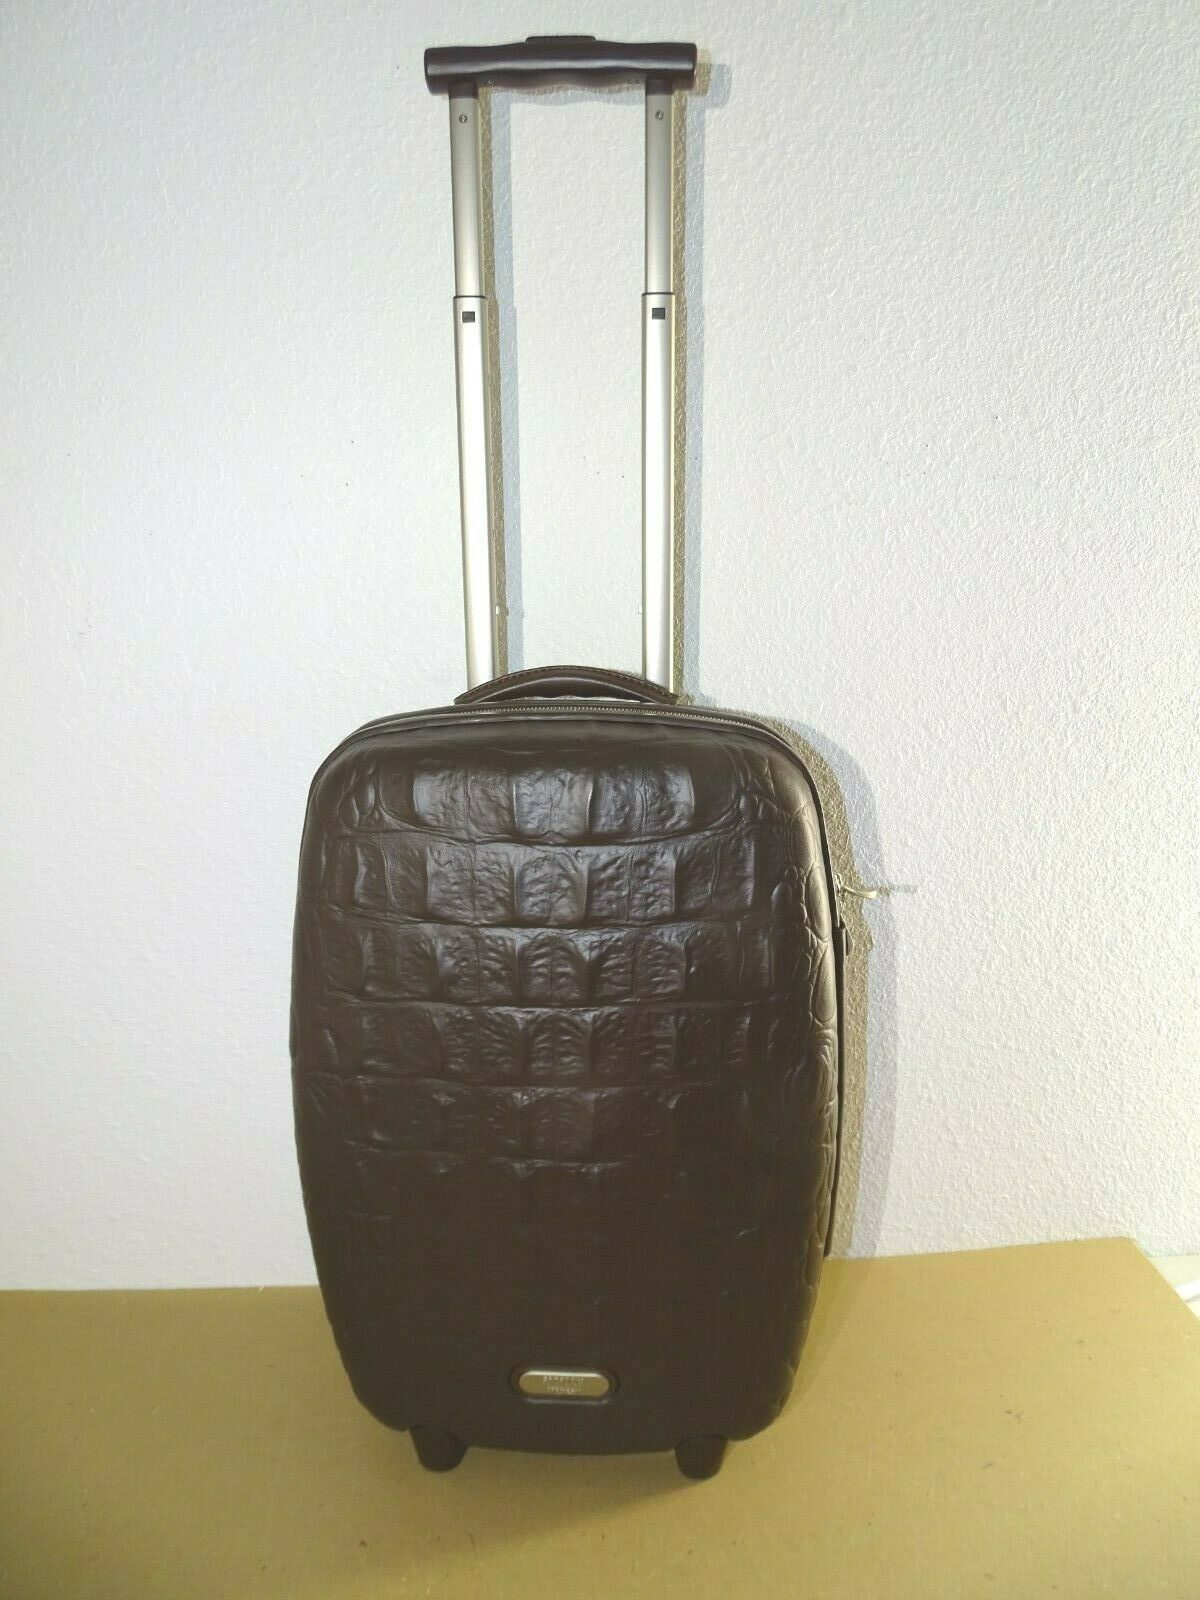 Samsonite Alexander McQueen Black Label Carry-On Suitcase Luggage Crocodile image 6